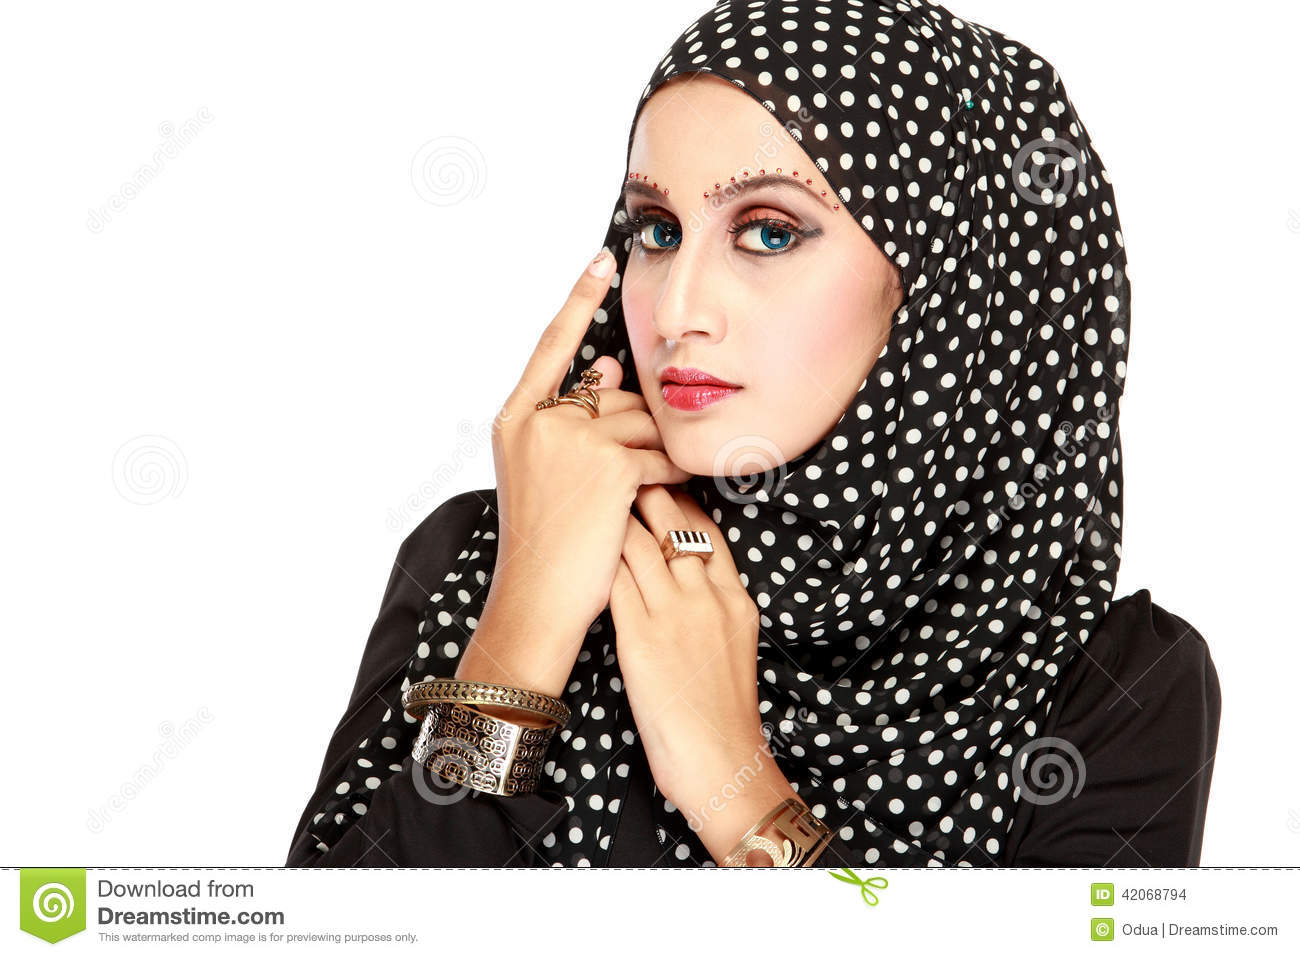 manitowish waters muslim girl personals Use features like bookmarks, note taking and highlighting while reading ghosts of manitowish waters apps kindle singles newsstand a girl with a tragic.